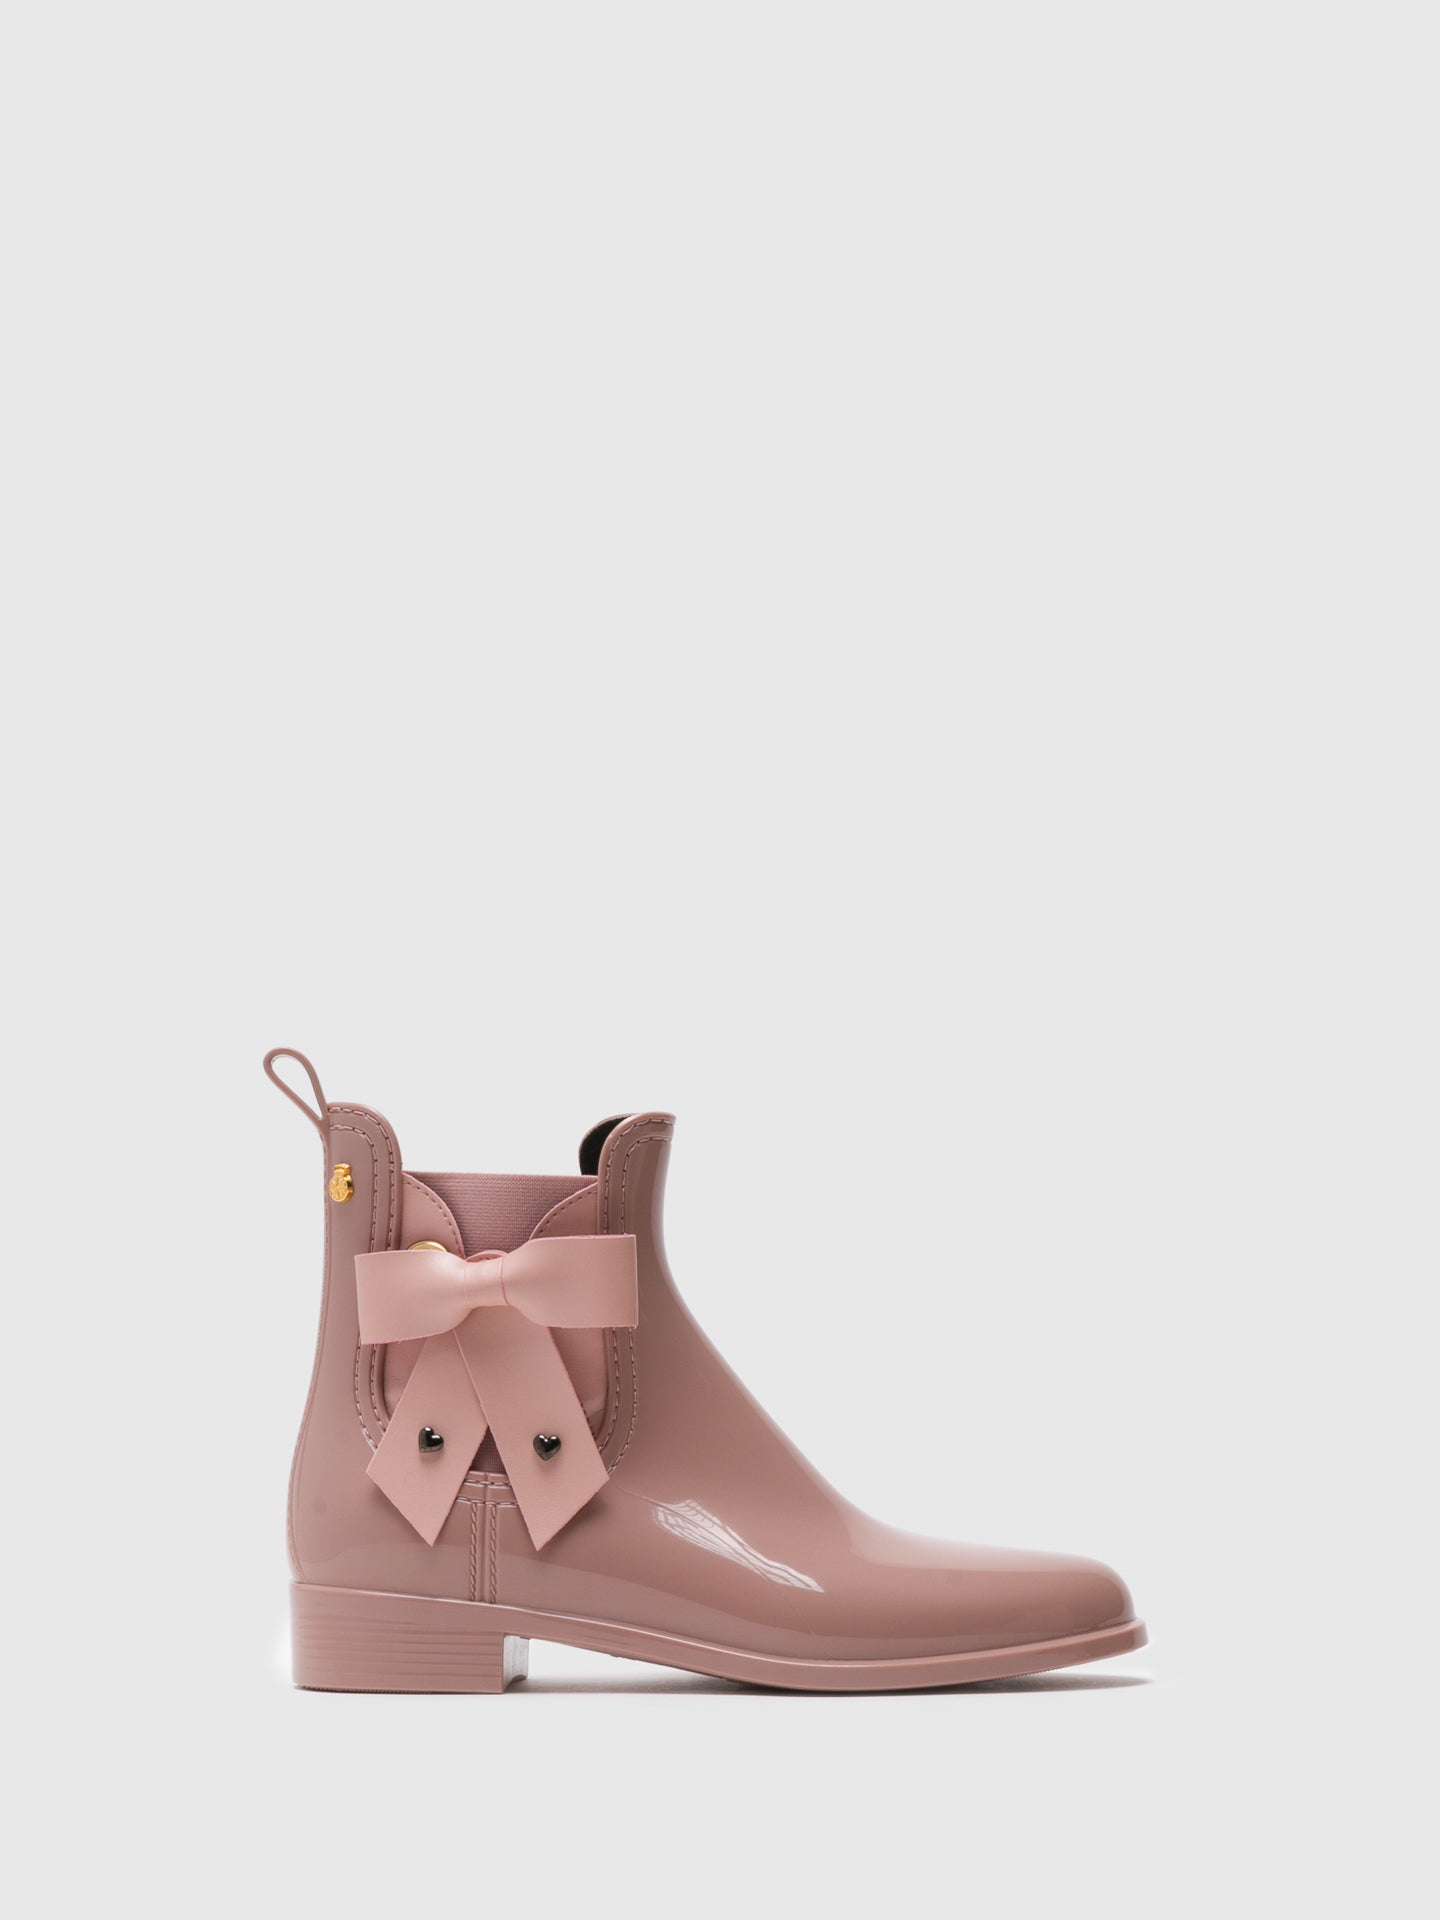 Lemon Jelly Stiefeletten im Chelsea-Stil in Rose